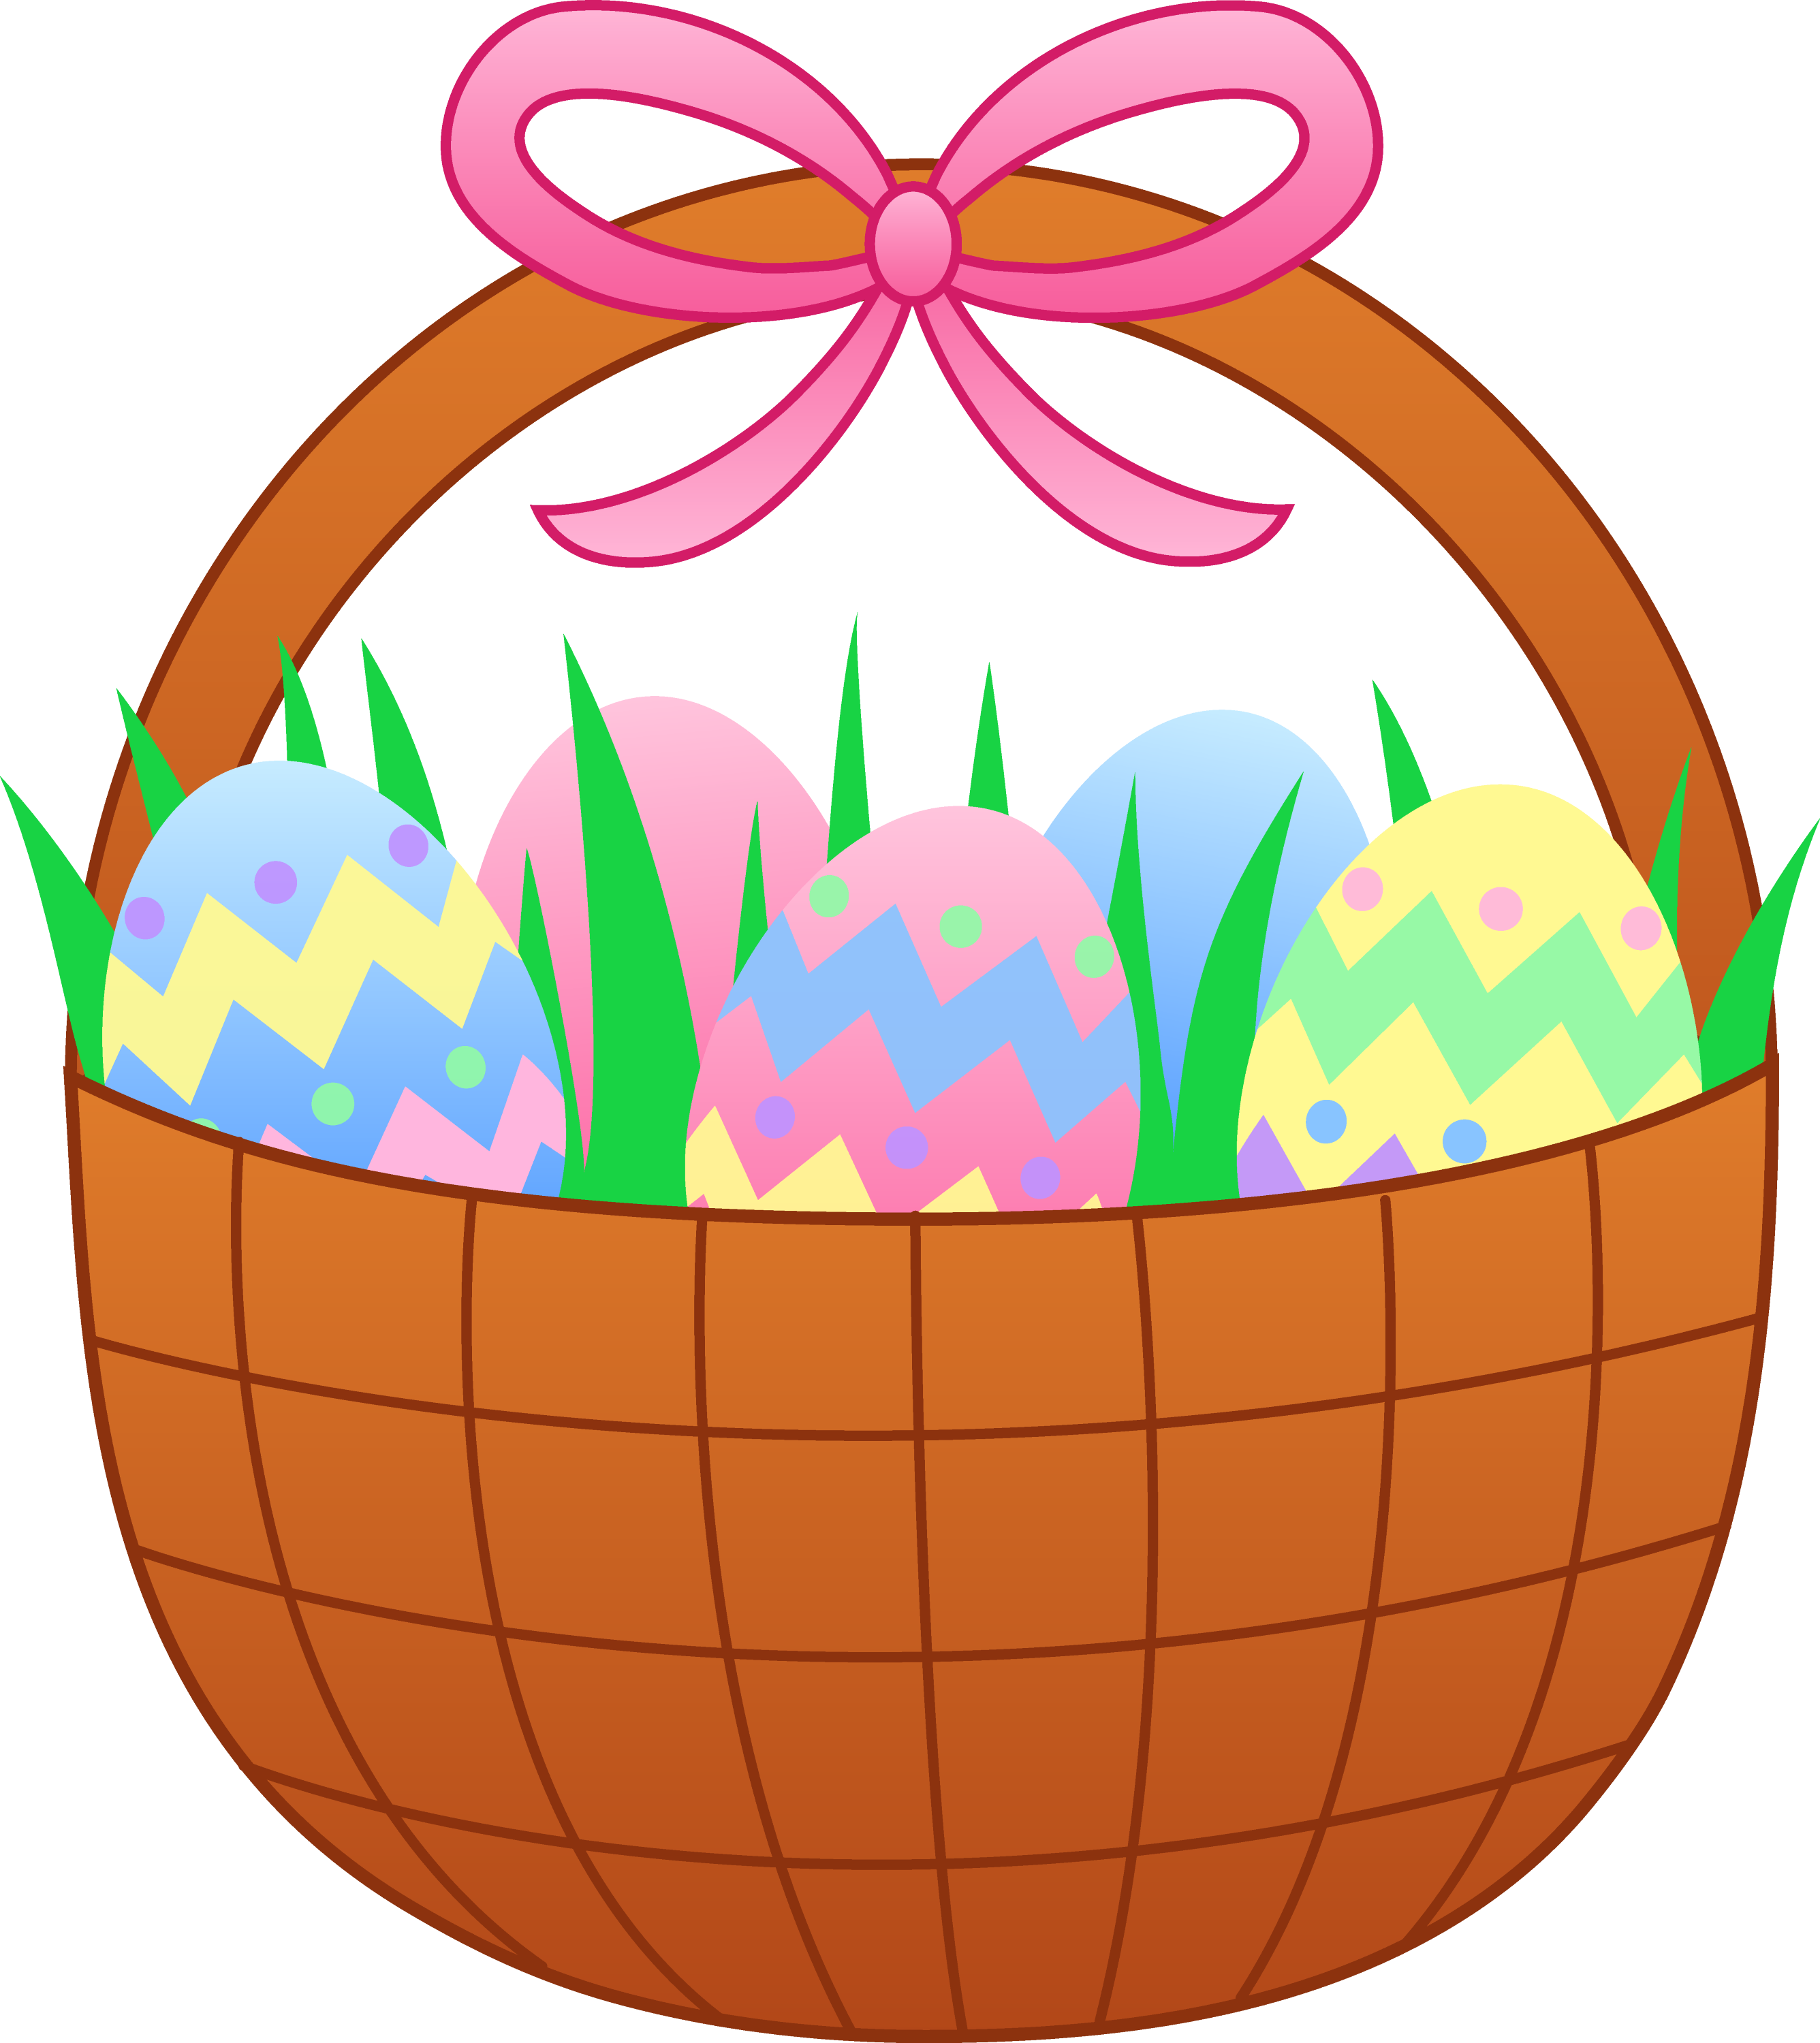 easter basket with colorful eggs free clip art rh sweetclipart com basket clipart images basketball clipart free